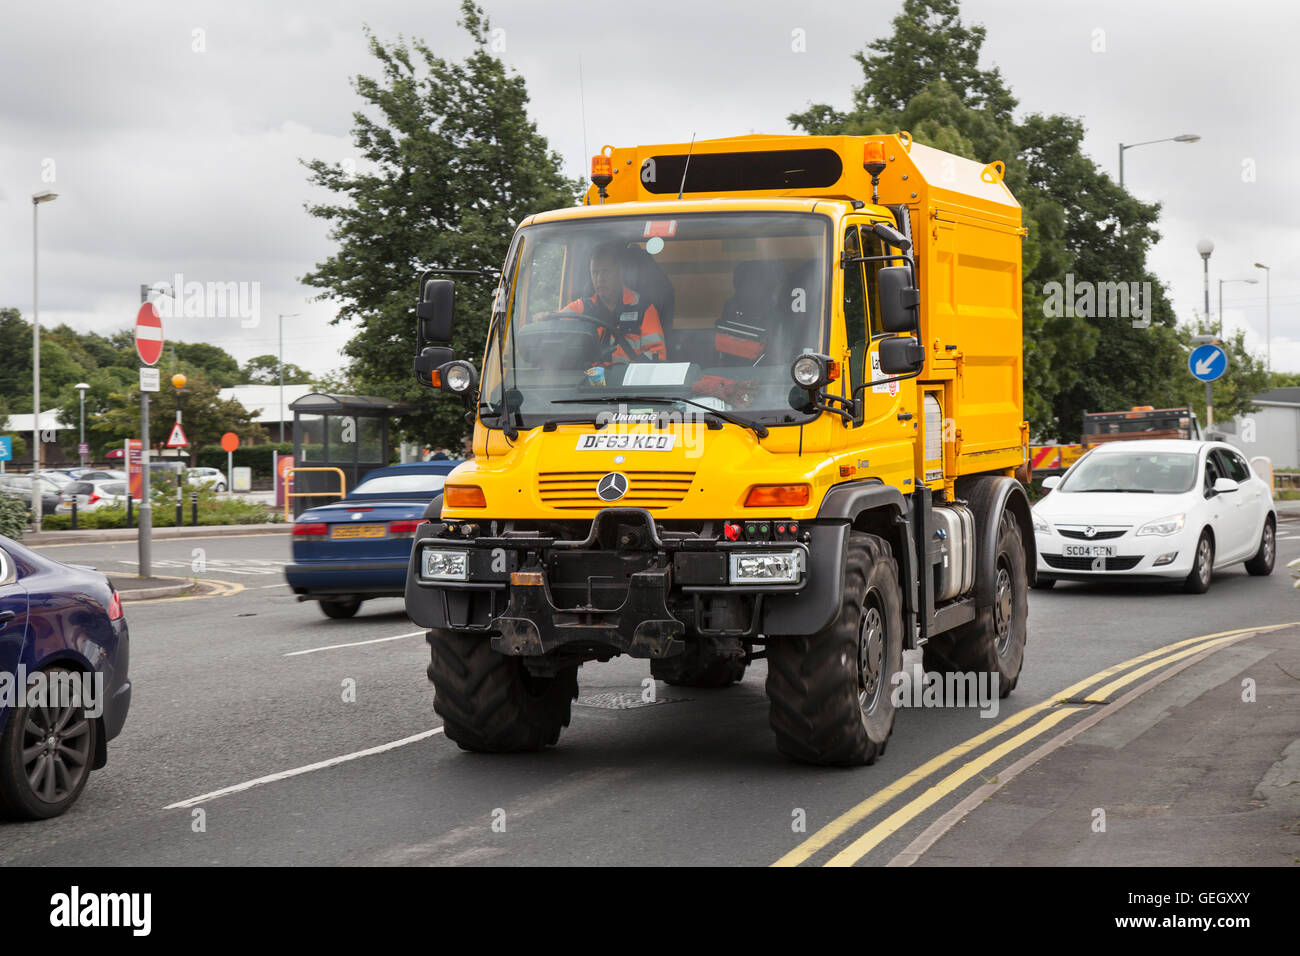 Lancashie County Council Unimog Mercedes-Benz U400